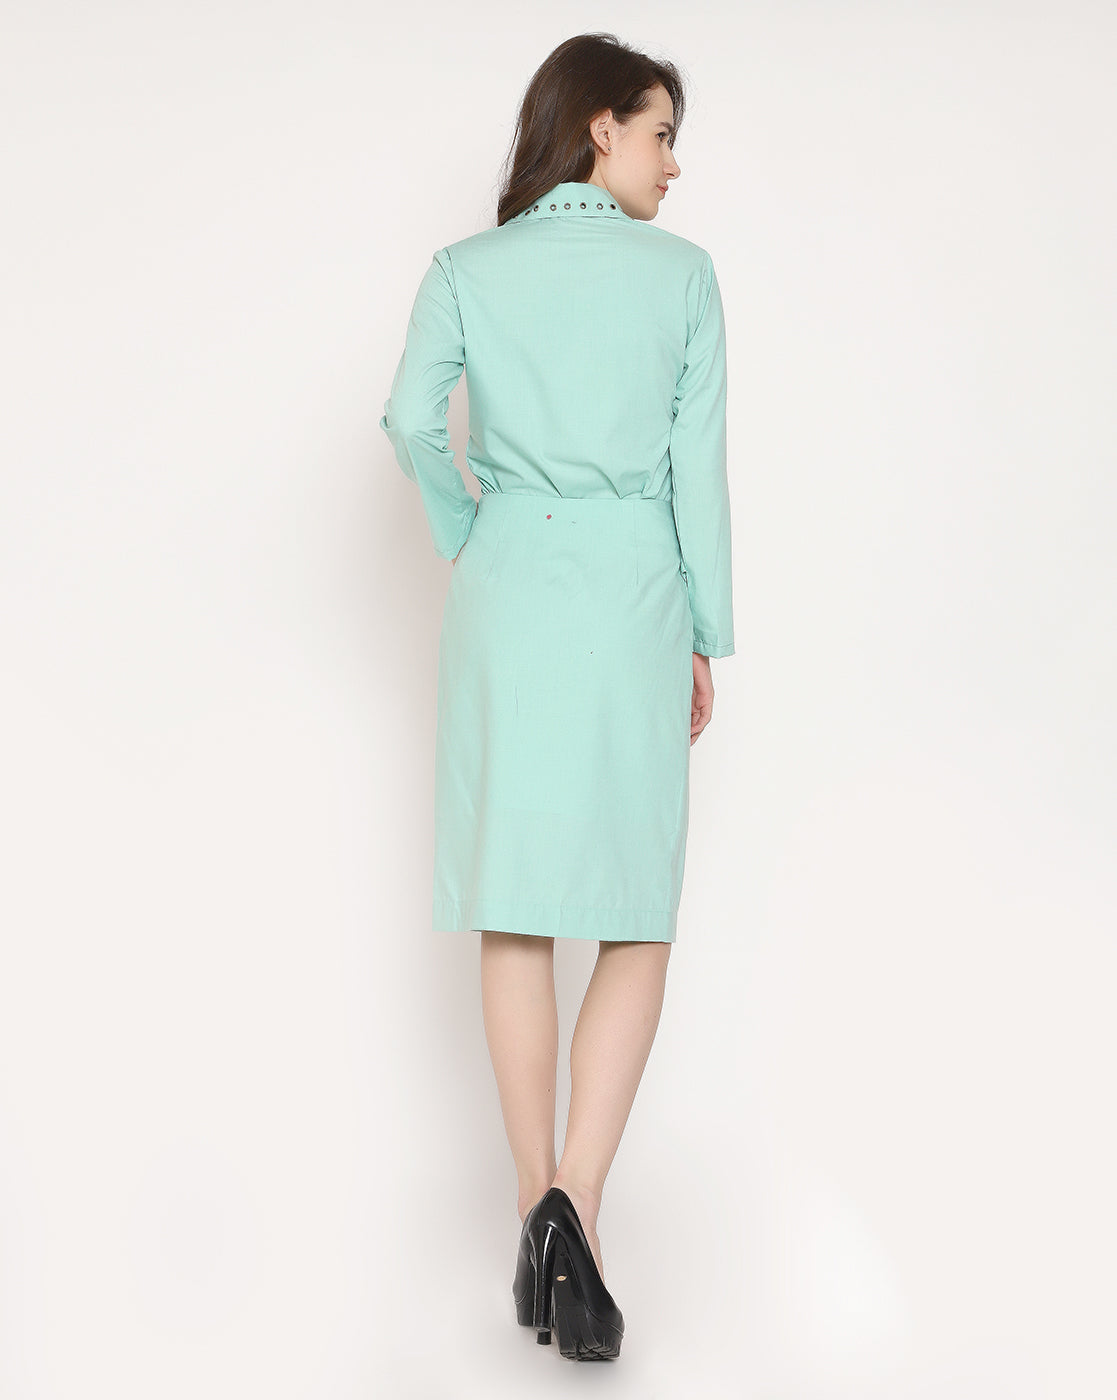 The Raving Rushed Skirt-Sea Green